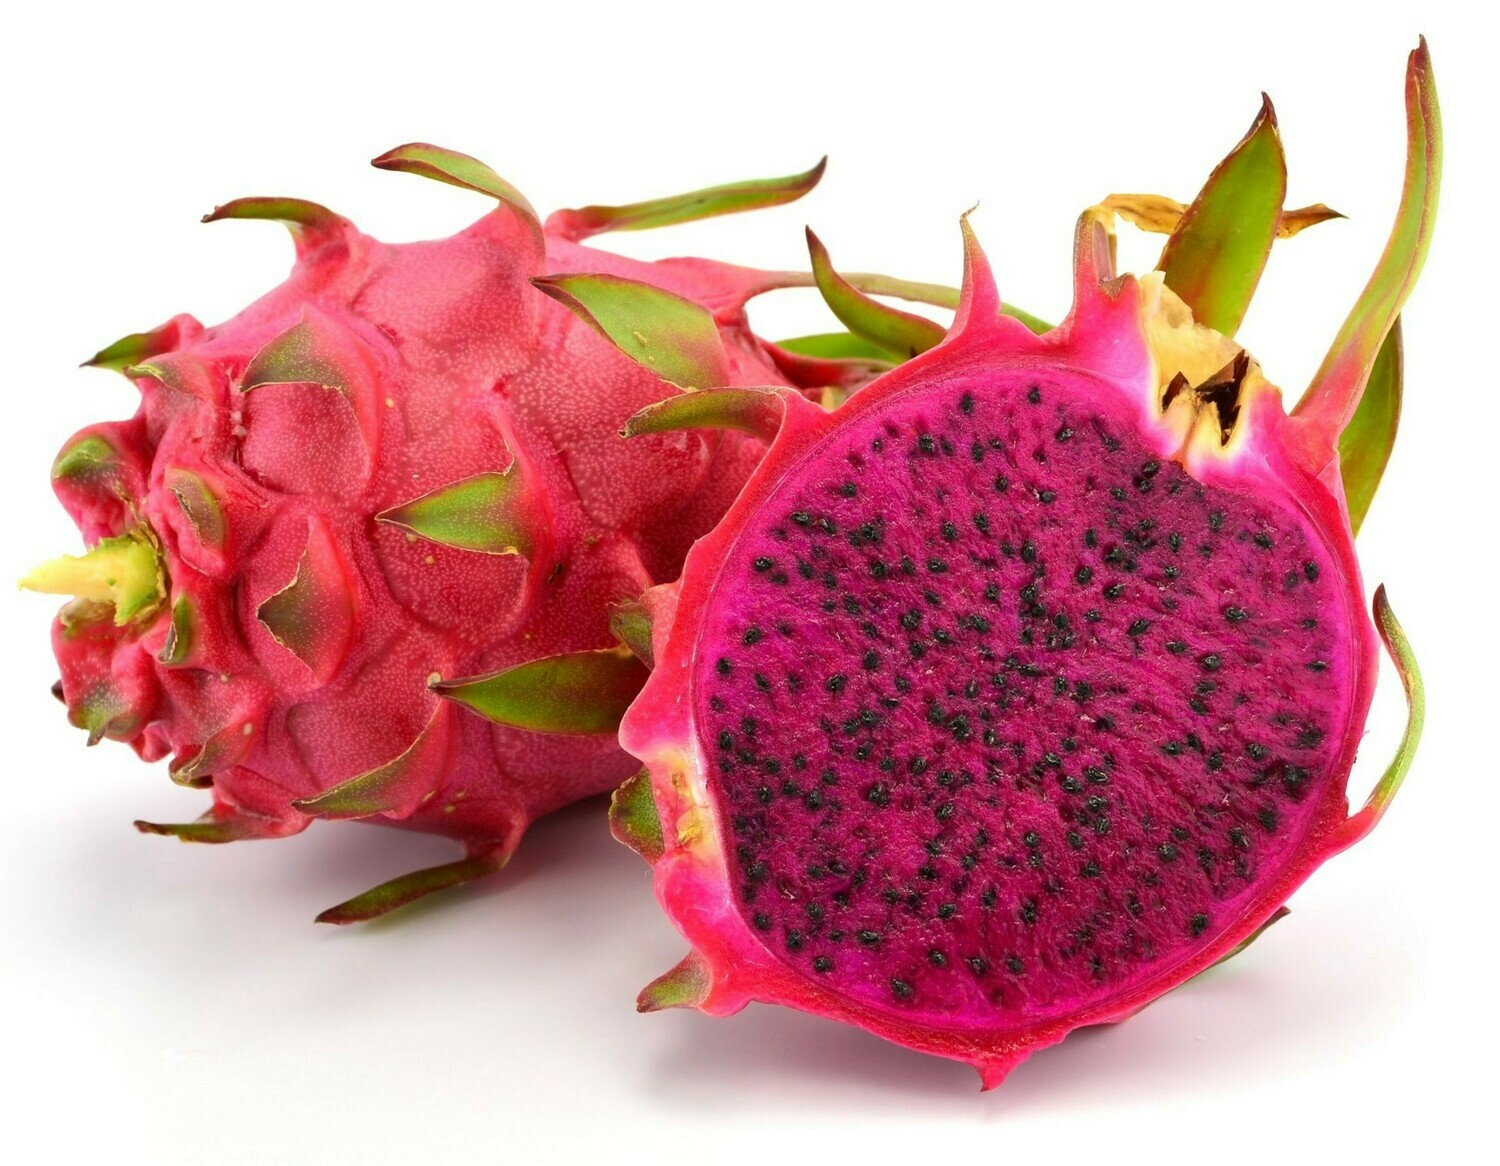 RED DRAGON FRUIT (PITAYA)